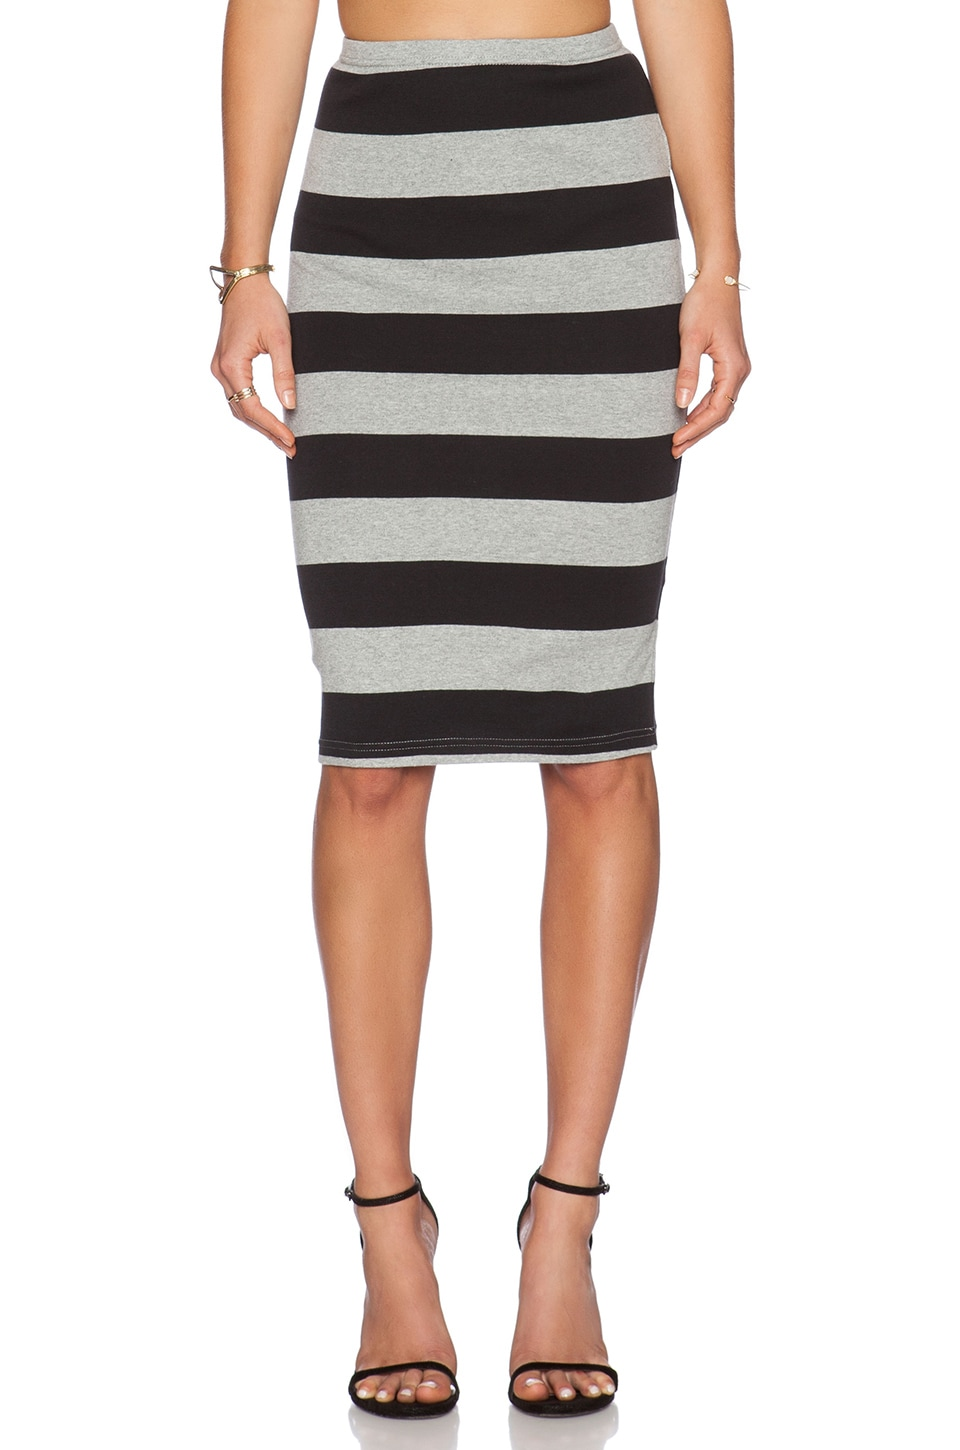 BB Dakota Phinley Pencil Skirt in Black